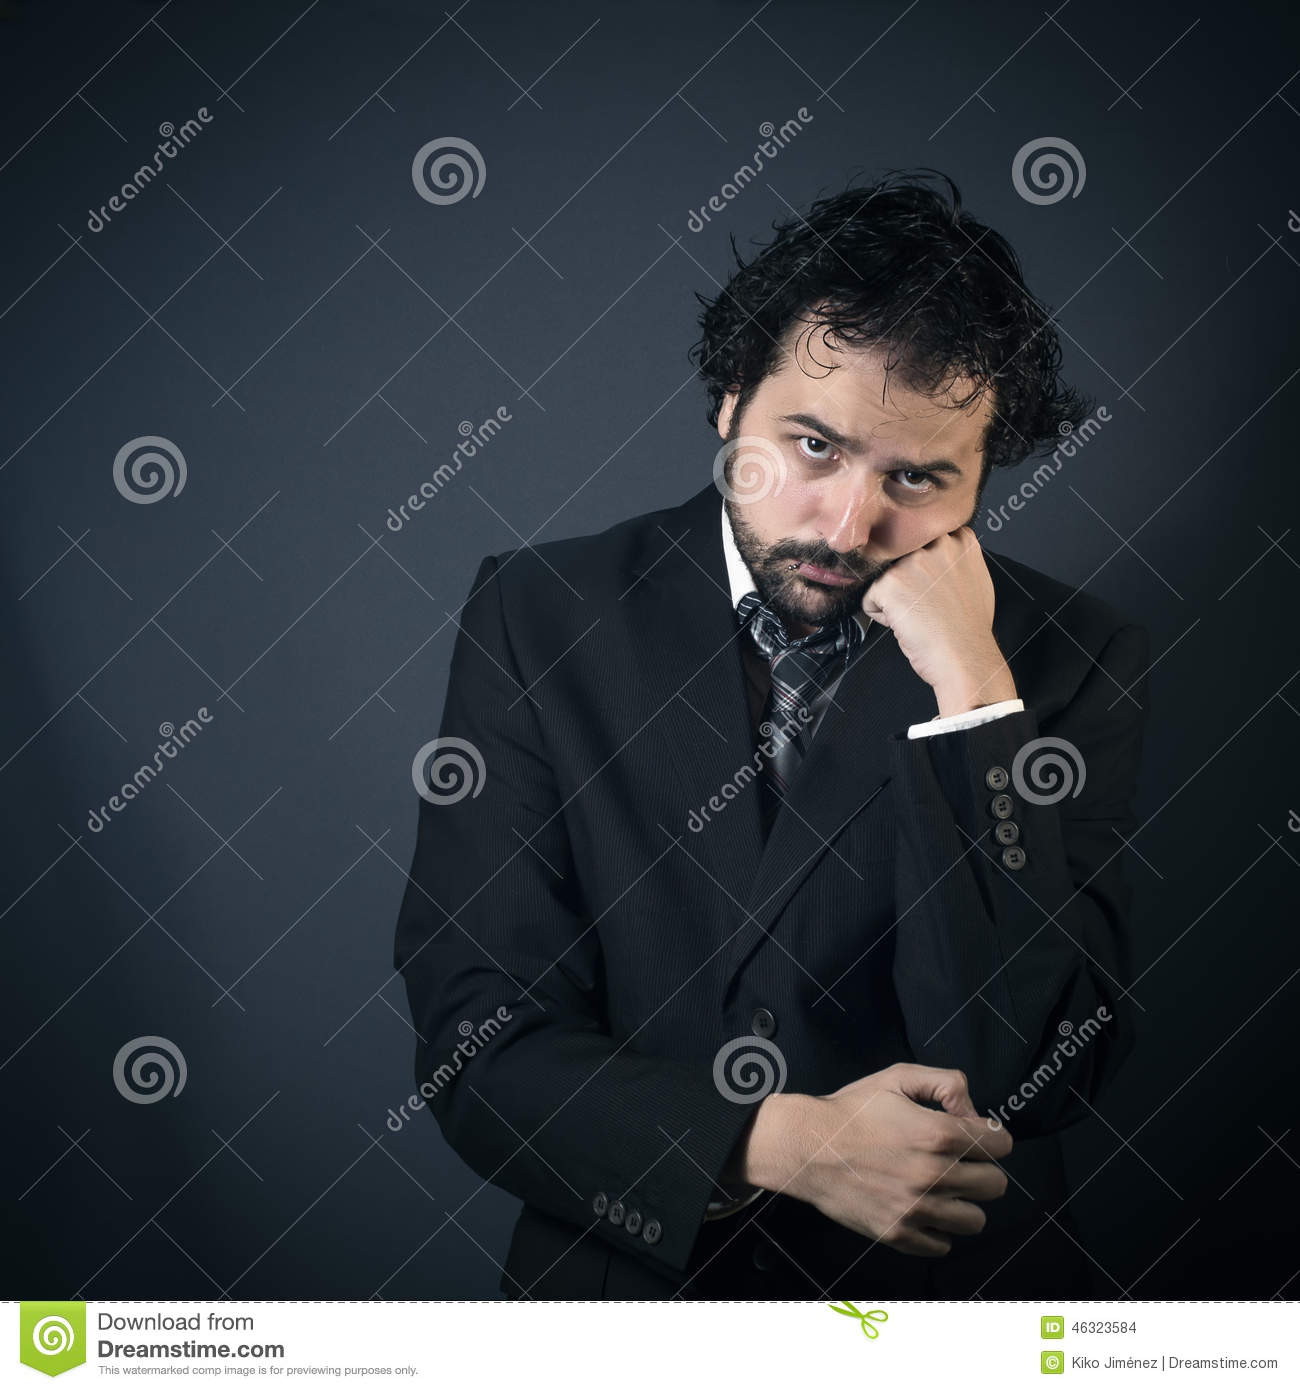 Sad Man Thinking Stock Photo - Image: 46323584